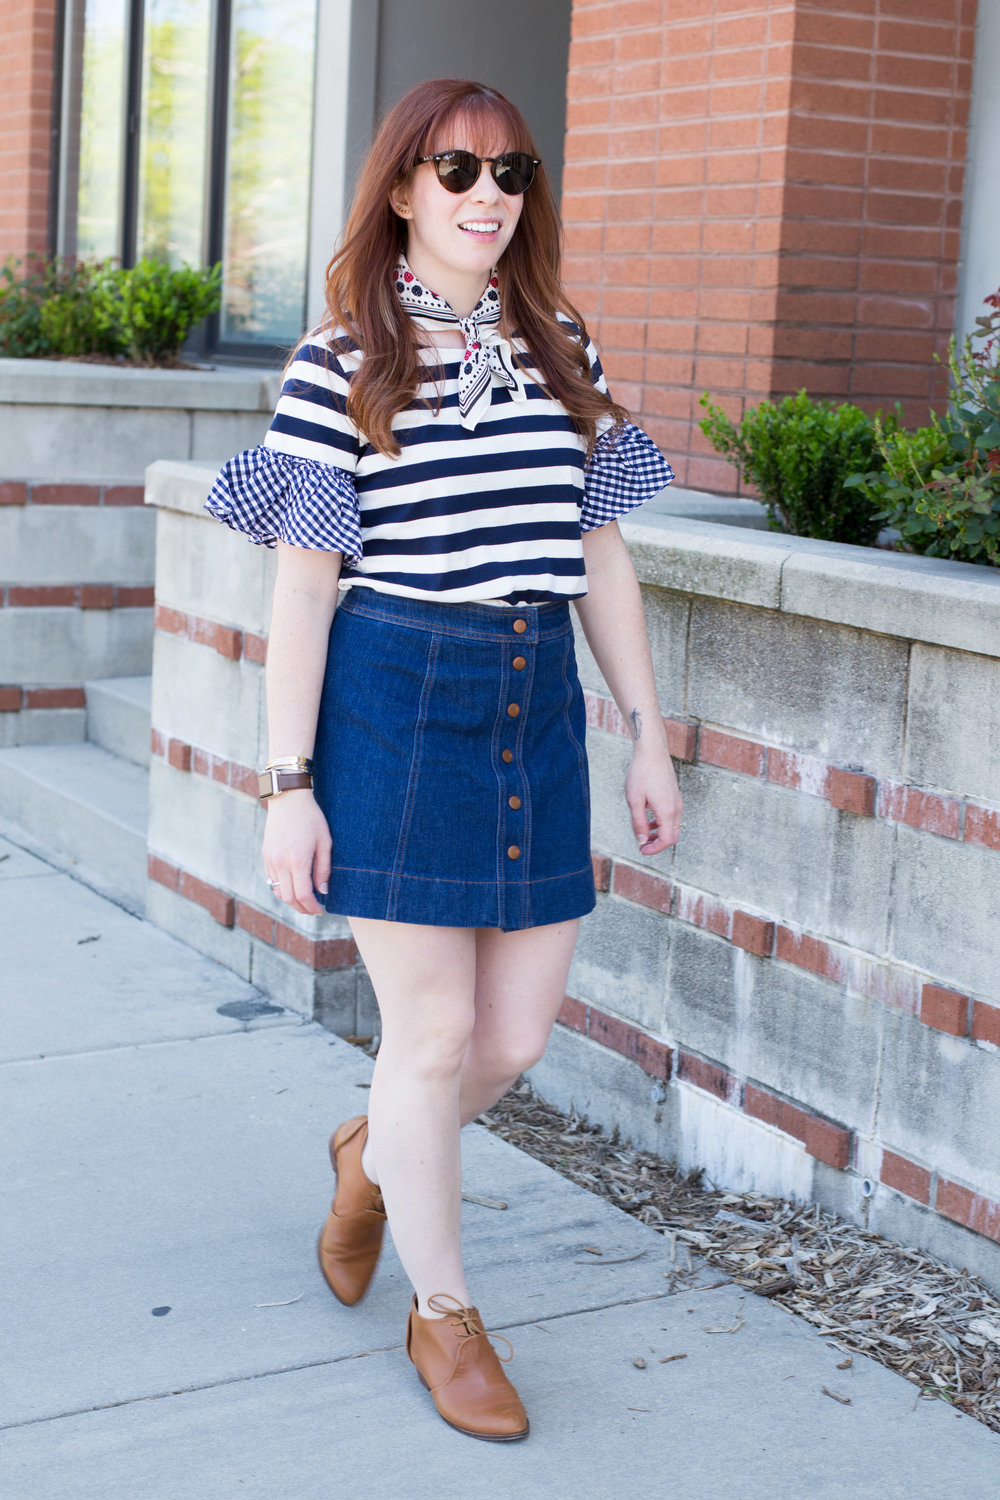 Adding a neck scarf to a simple blouse and flirty denim skirt is the perfect way to make a comfortable outfit unique. Find out more at www.thefashionablefoodieblog.com!